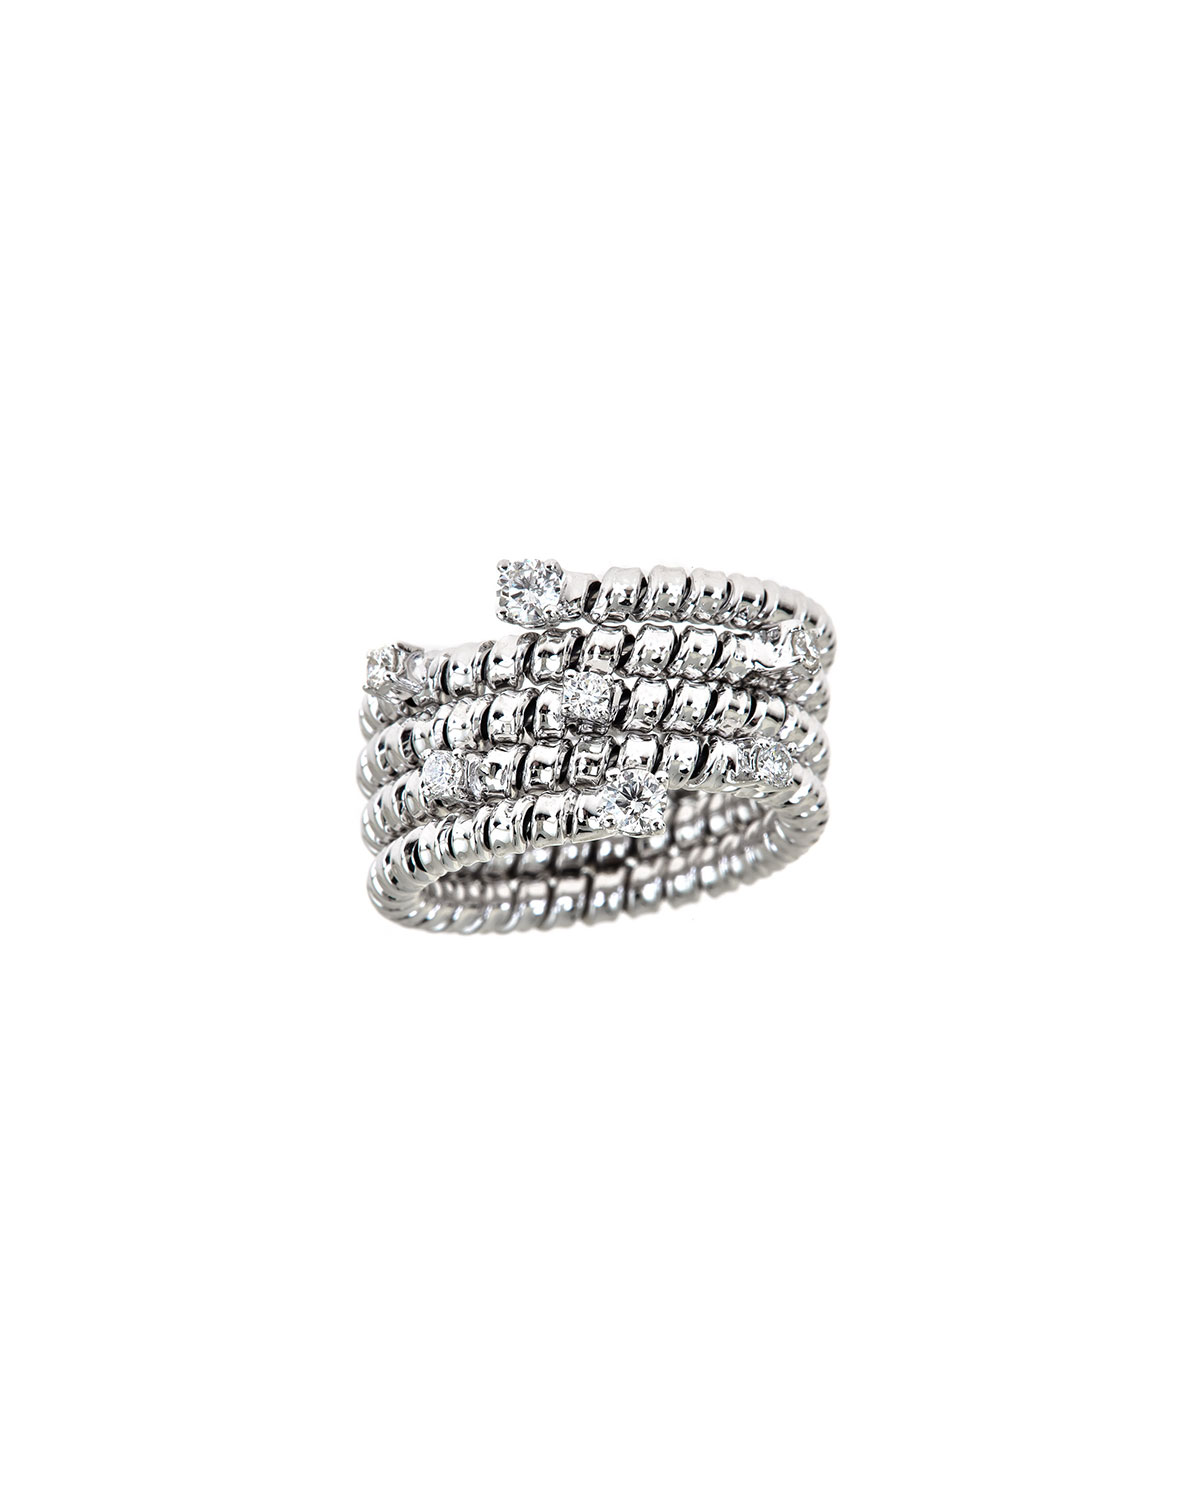 ZYDO Spiral 18K White Gold Diamond Coil Ring